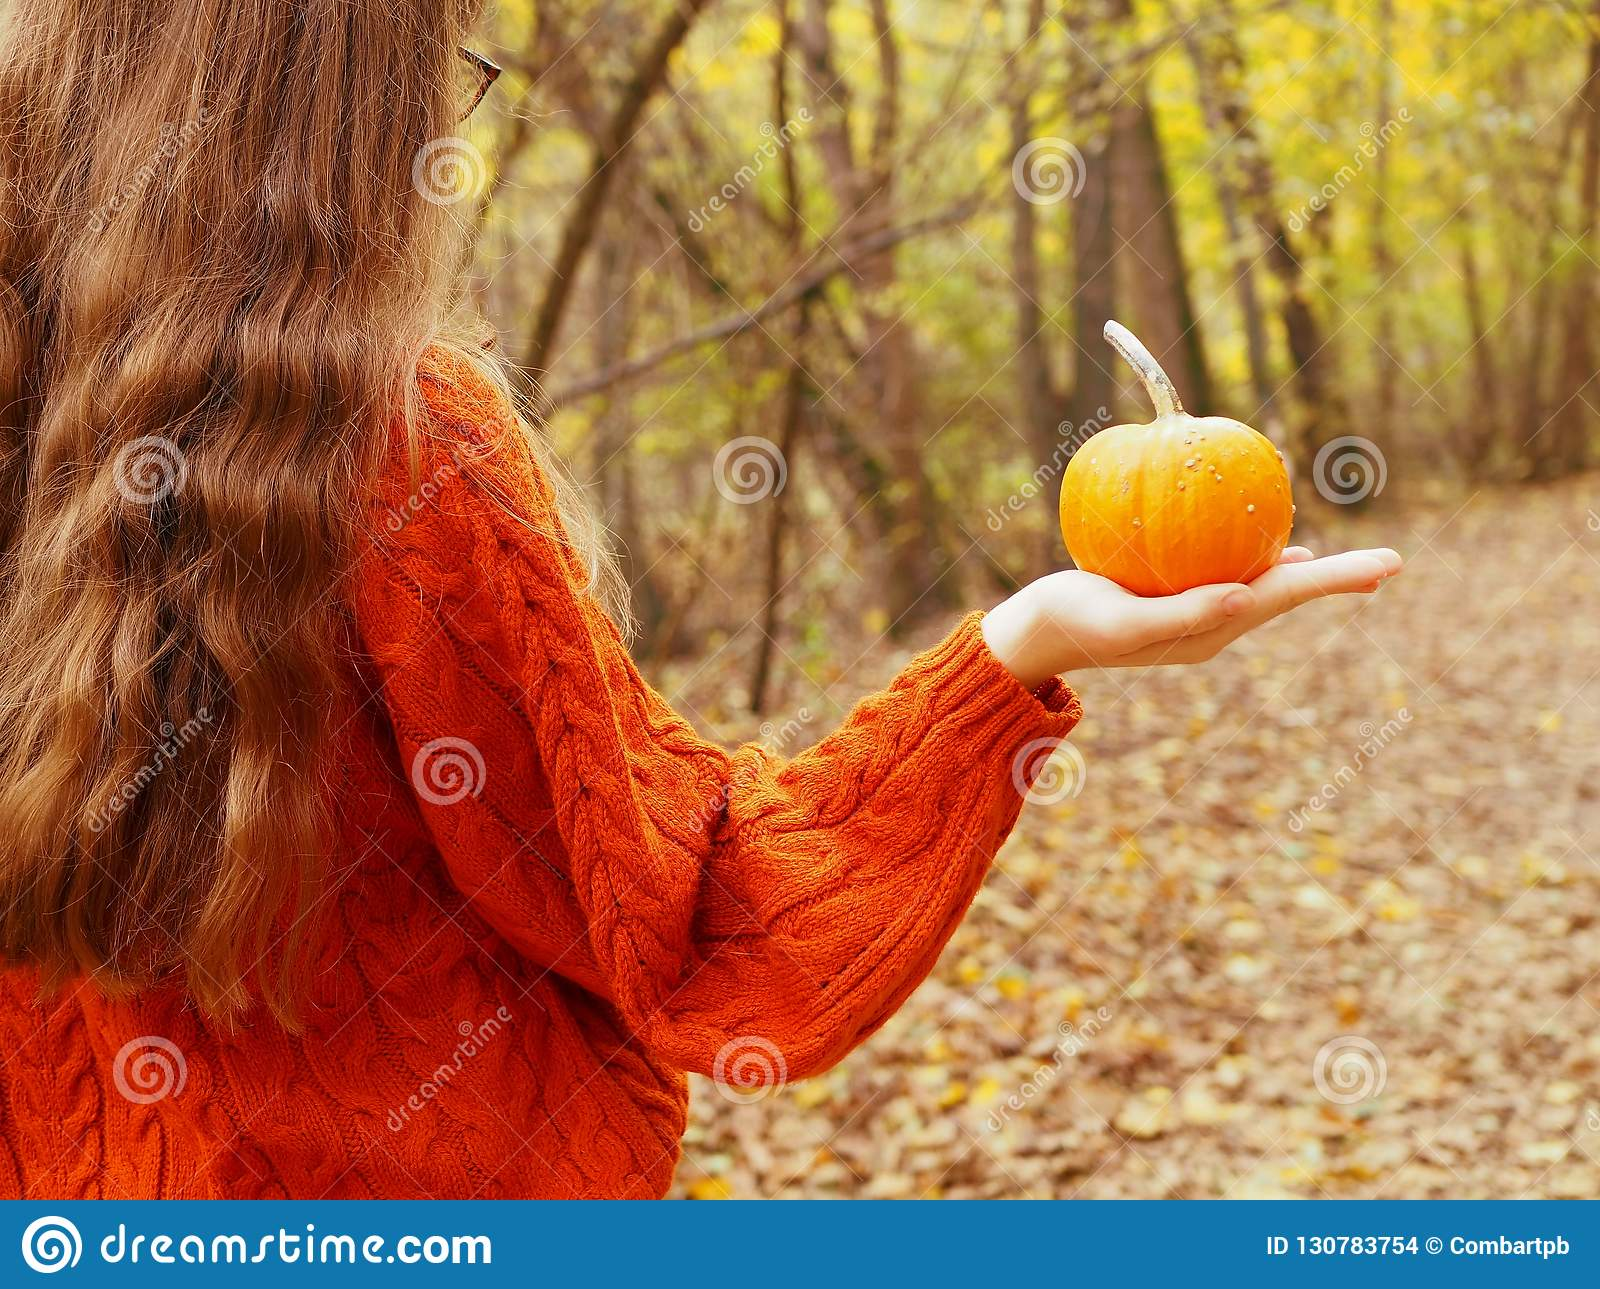 A teenage girl holding a pumpkin in her hand walking in the forest